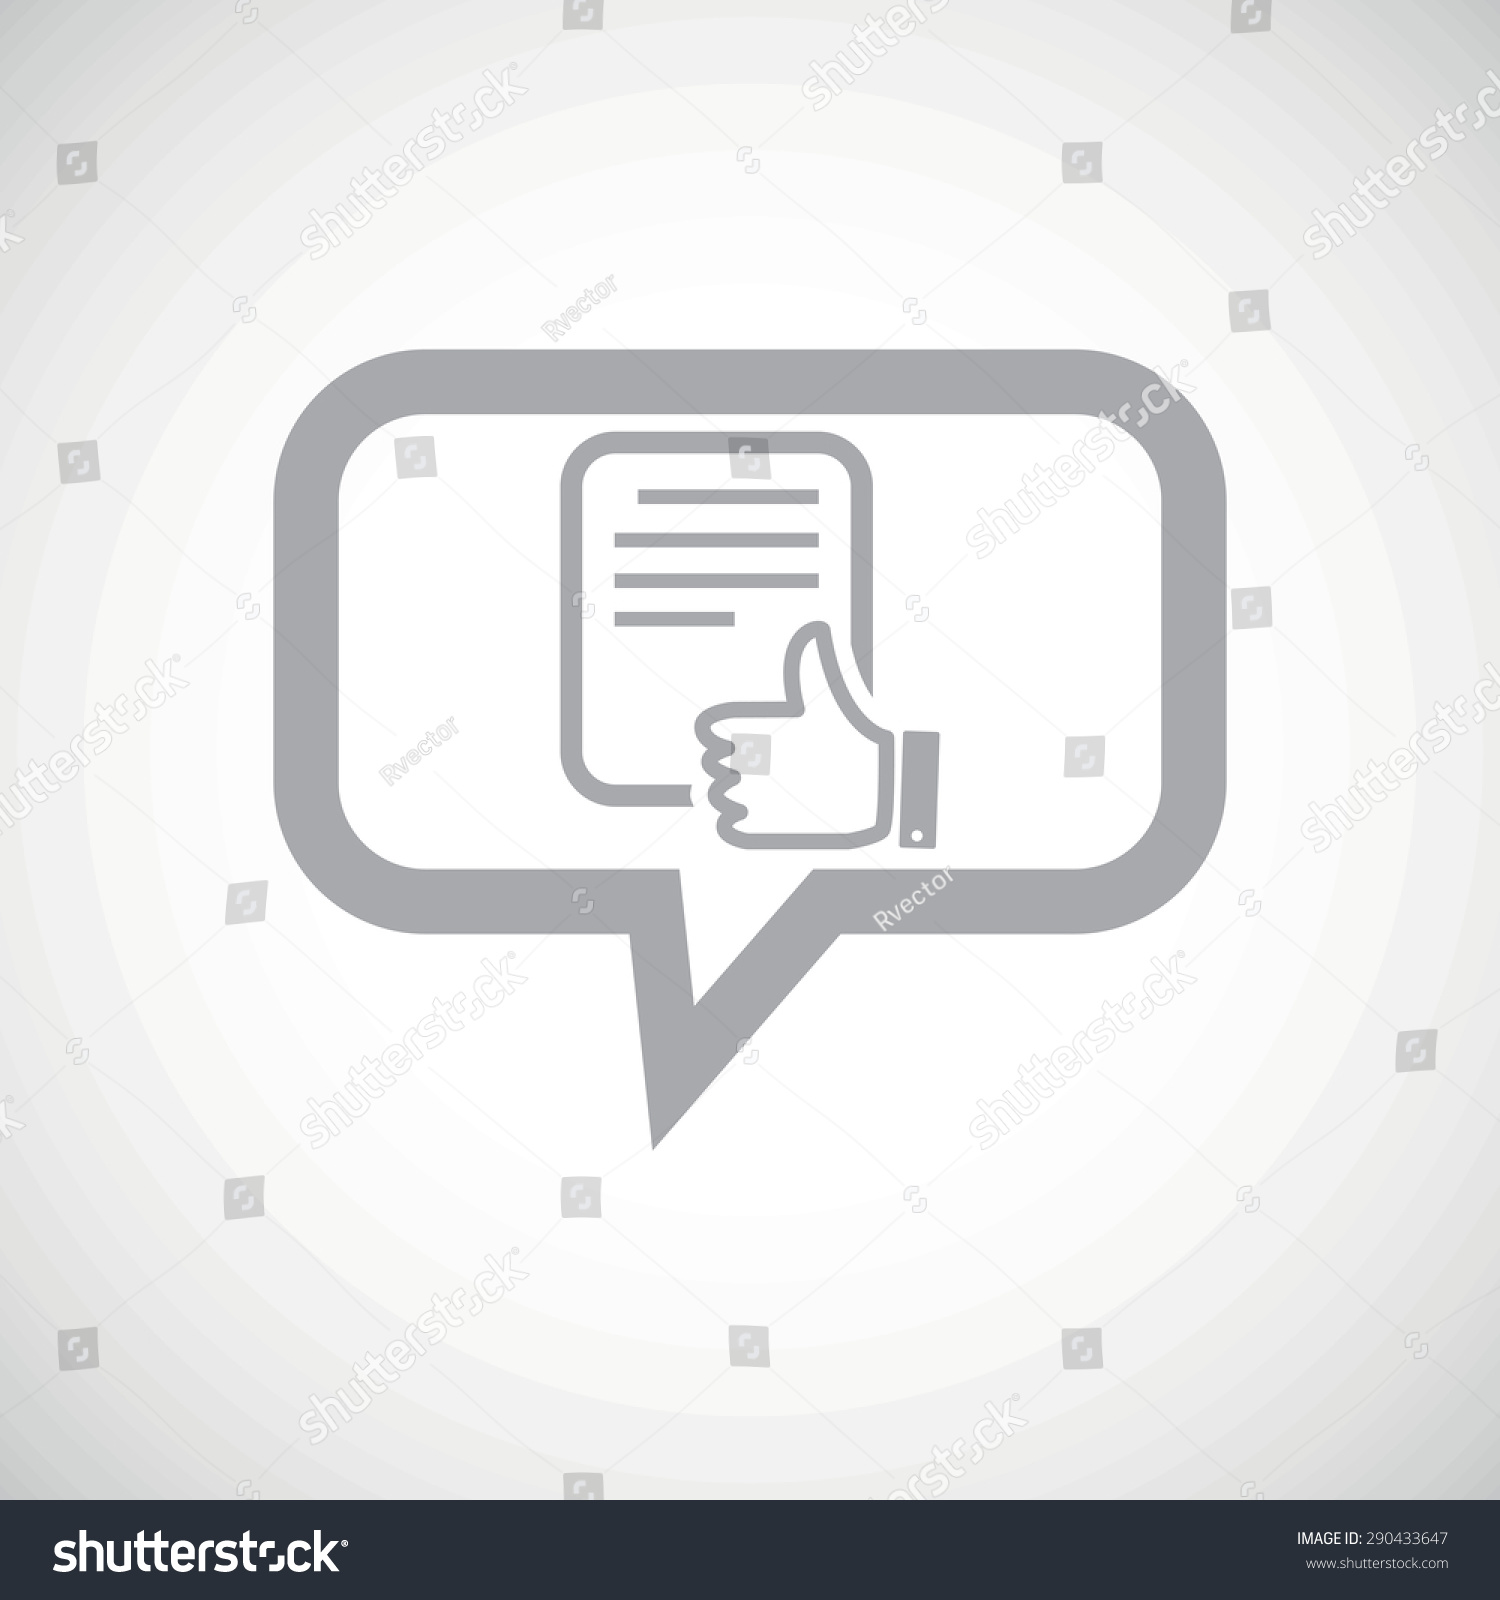 Grey image document like symbol chat stock vector 290433647 grey image of document with like symbol in chat bubble on white gradient background buycottarizona Choice Image